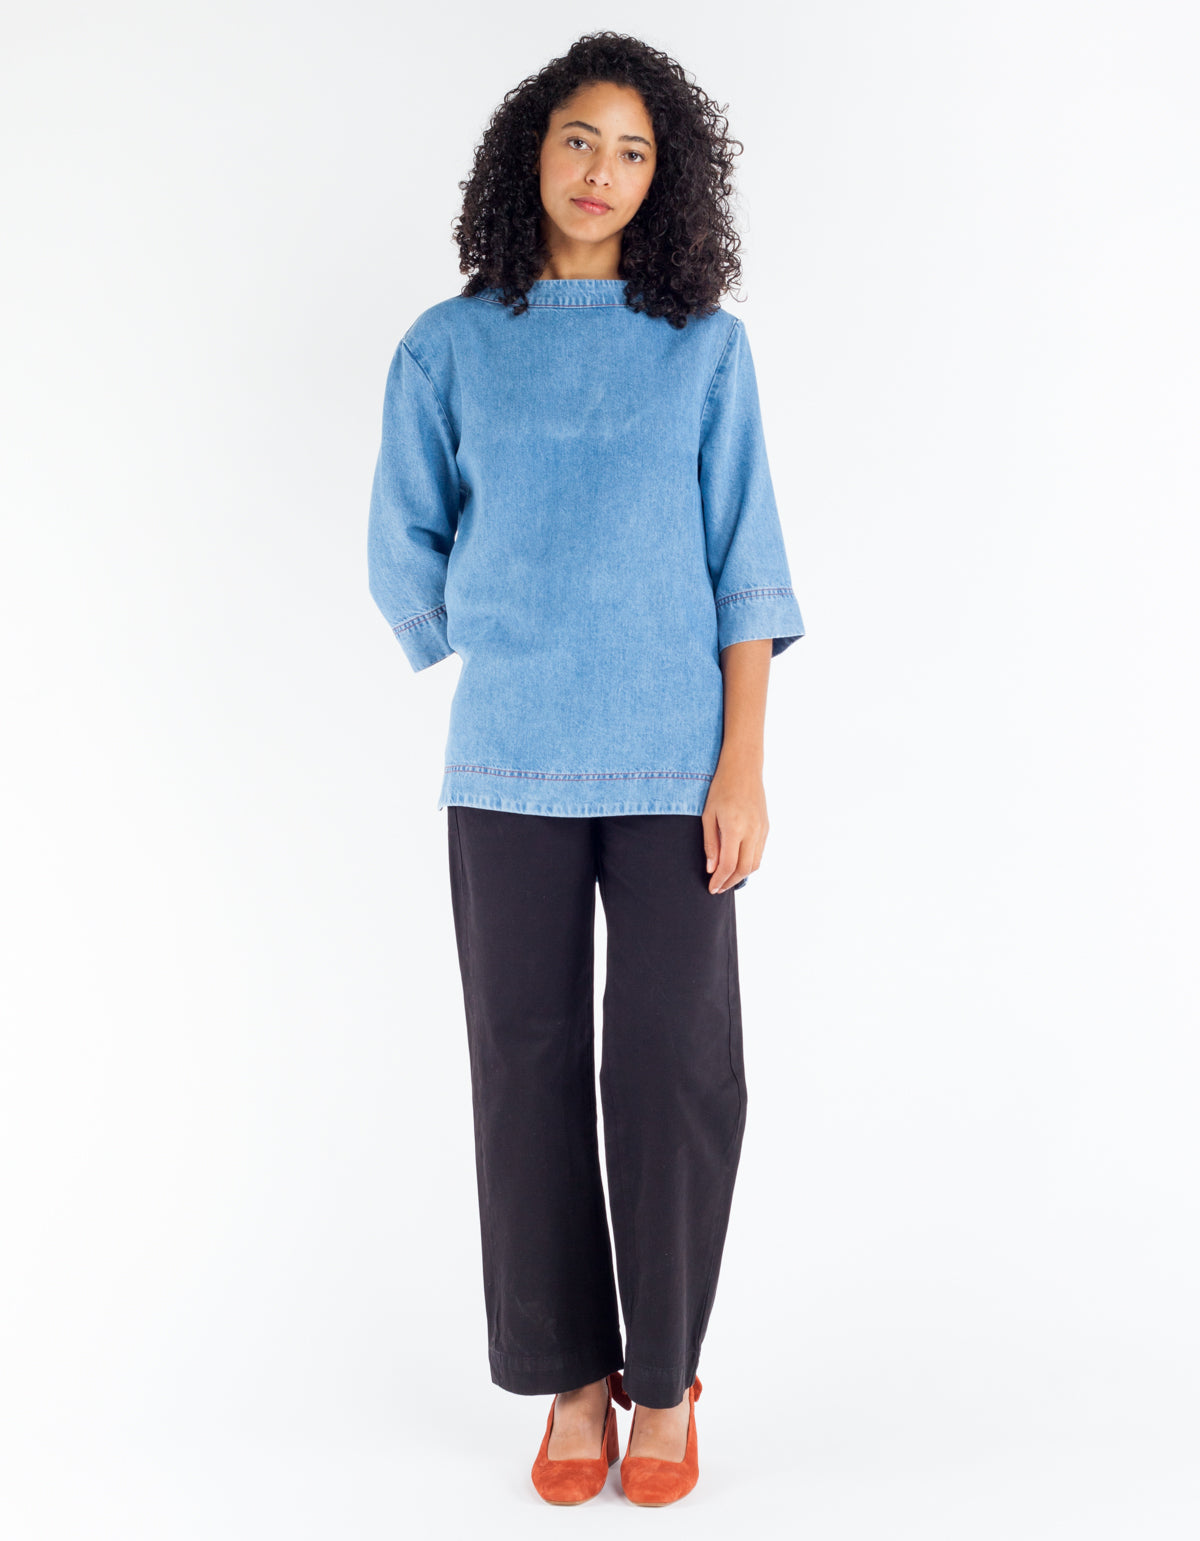 Sideline Nova Top Washed Denim